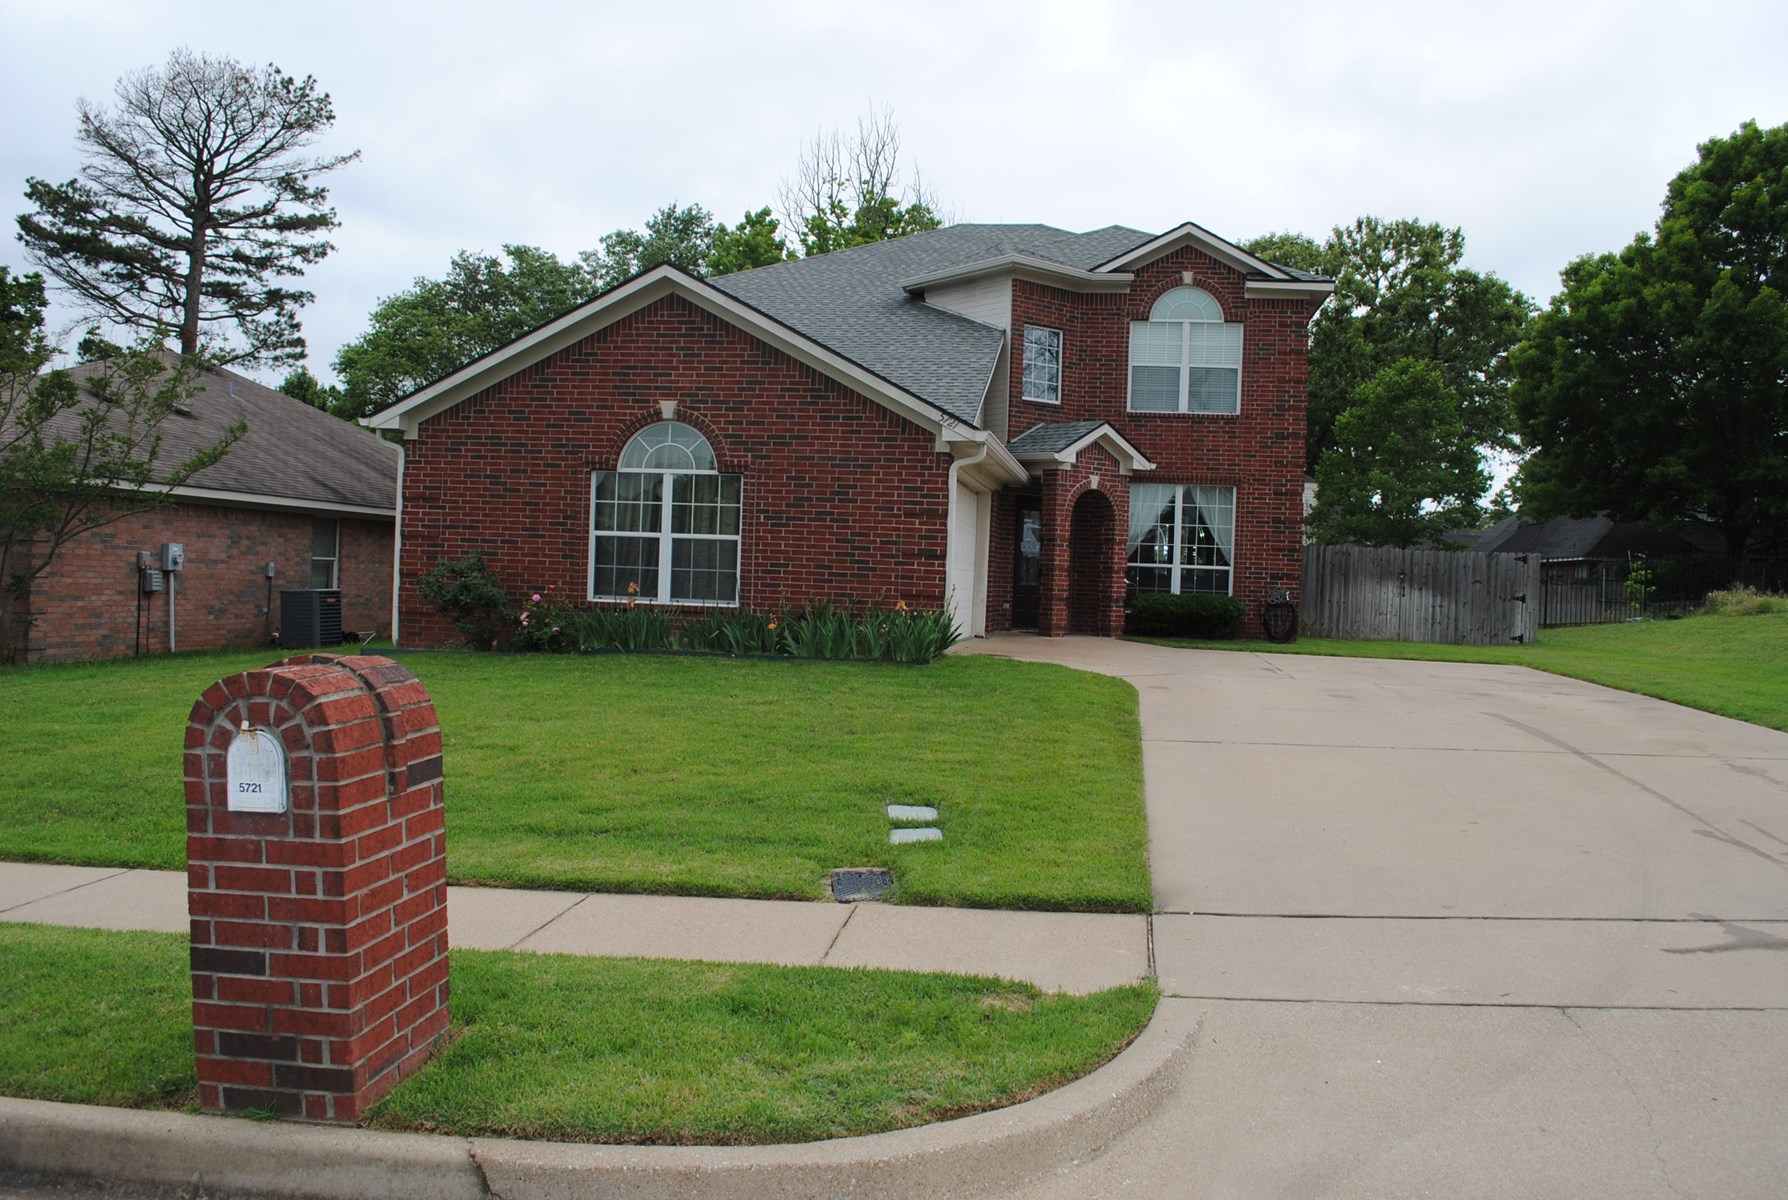 Home For Sale, Tyler Tx Whitehouse ISD, Smith County